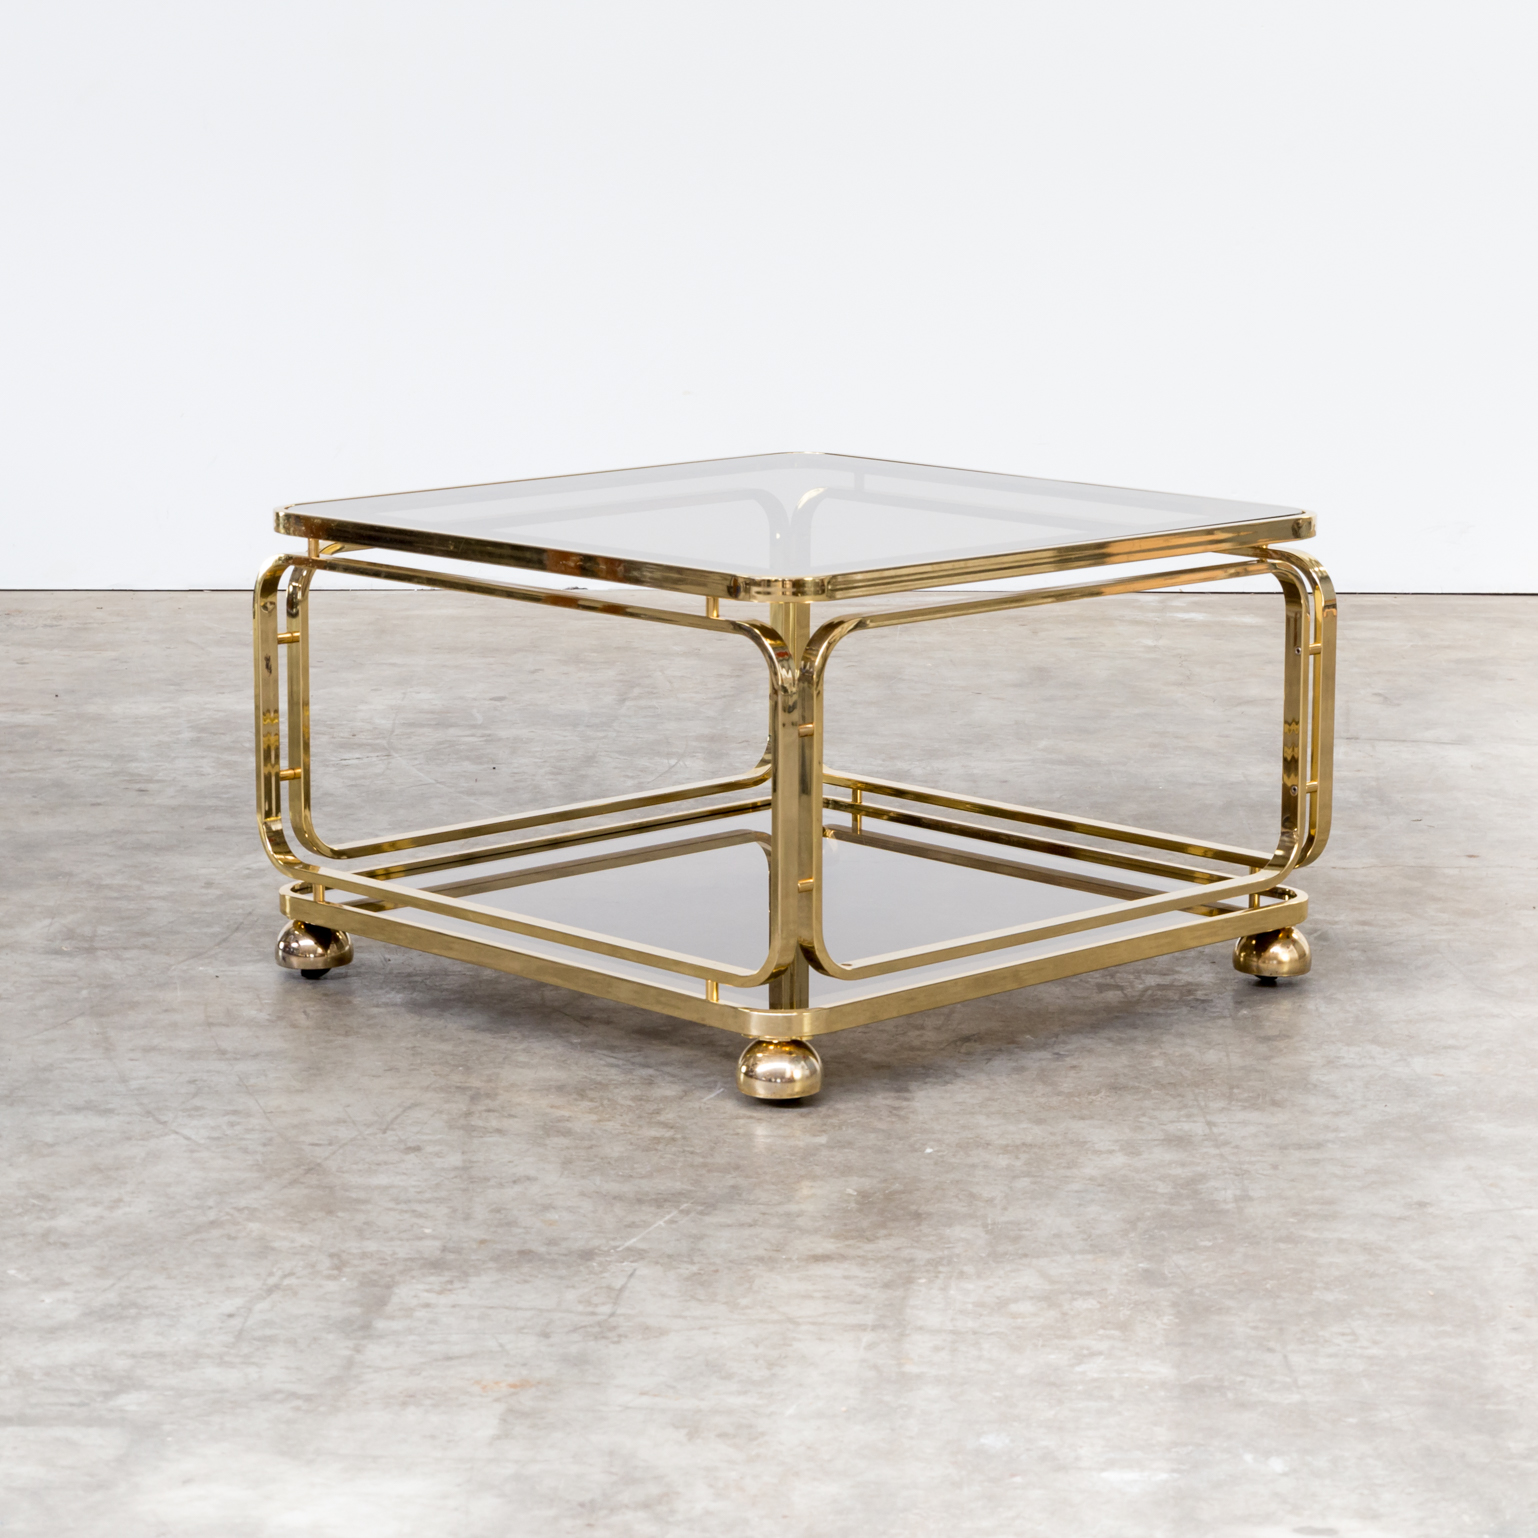 60s brass and glass coffee table side table for allegri for 60s coffee table